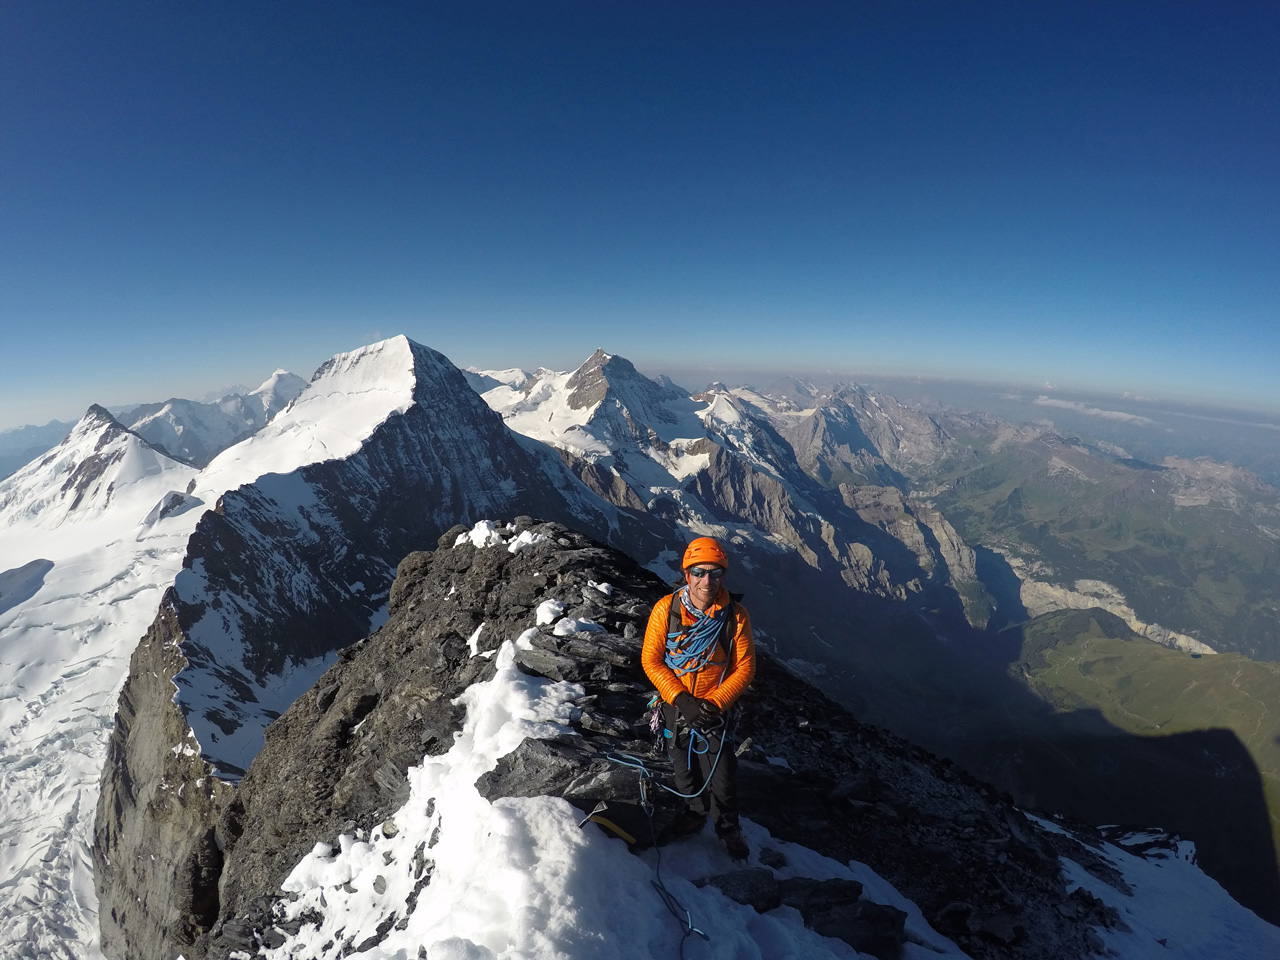 Guillaume Omont, Eiger, August 2016